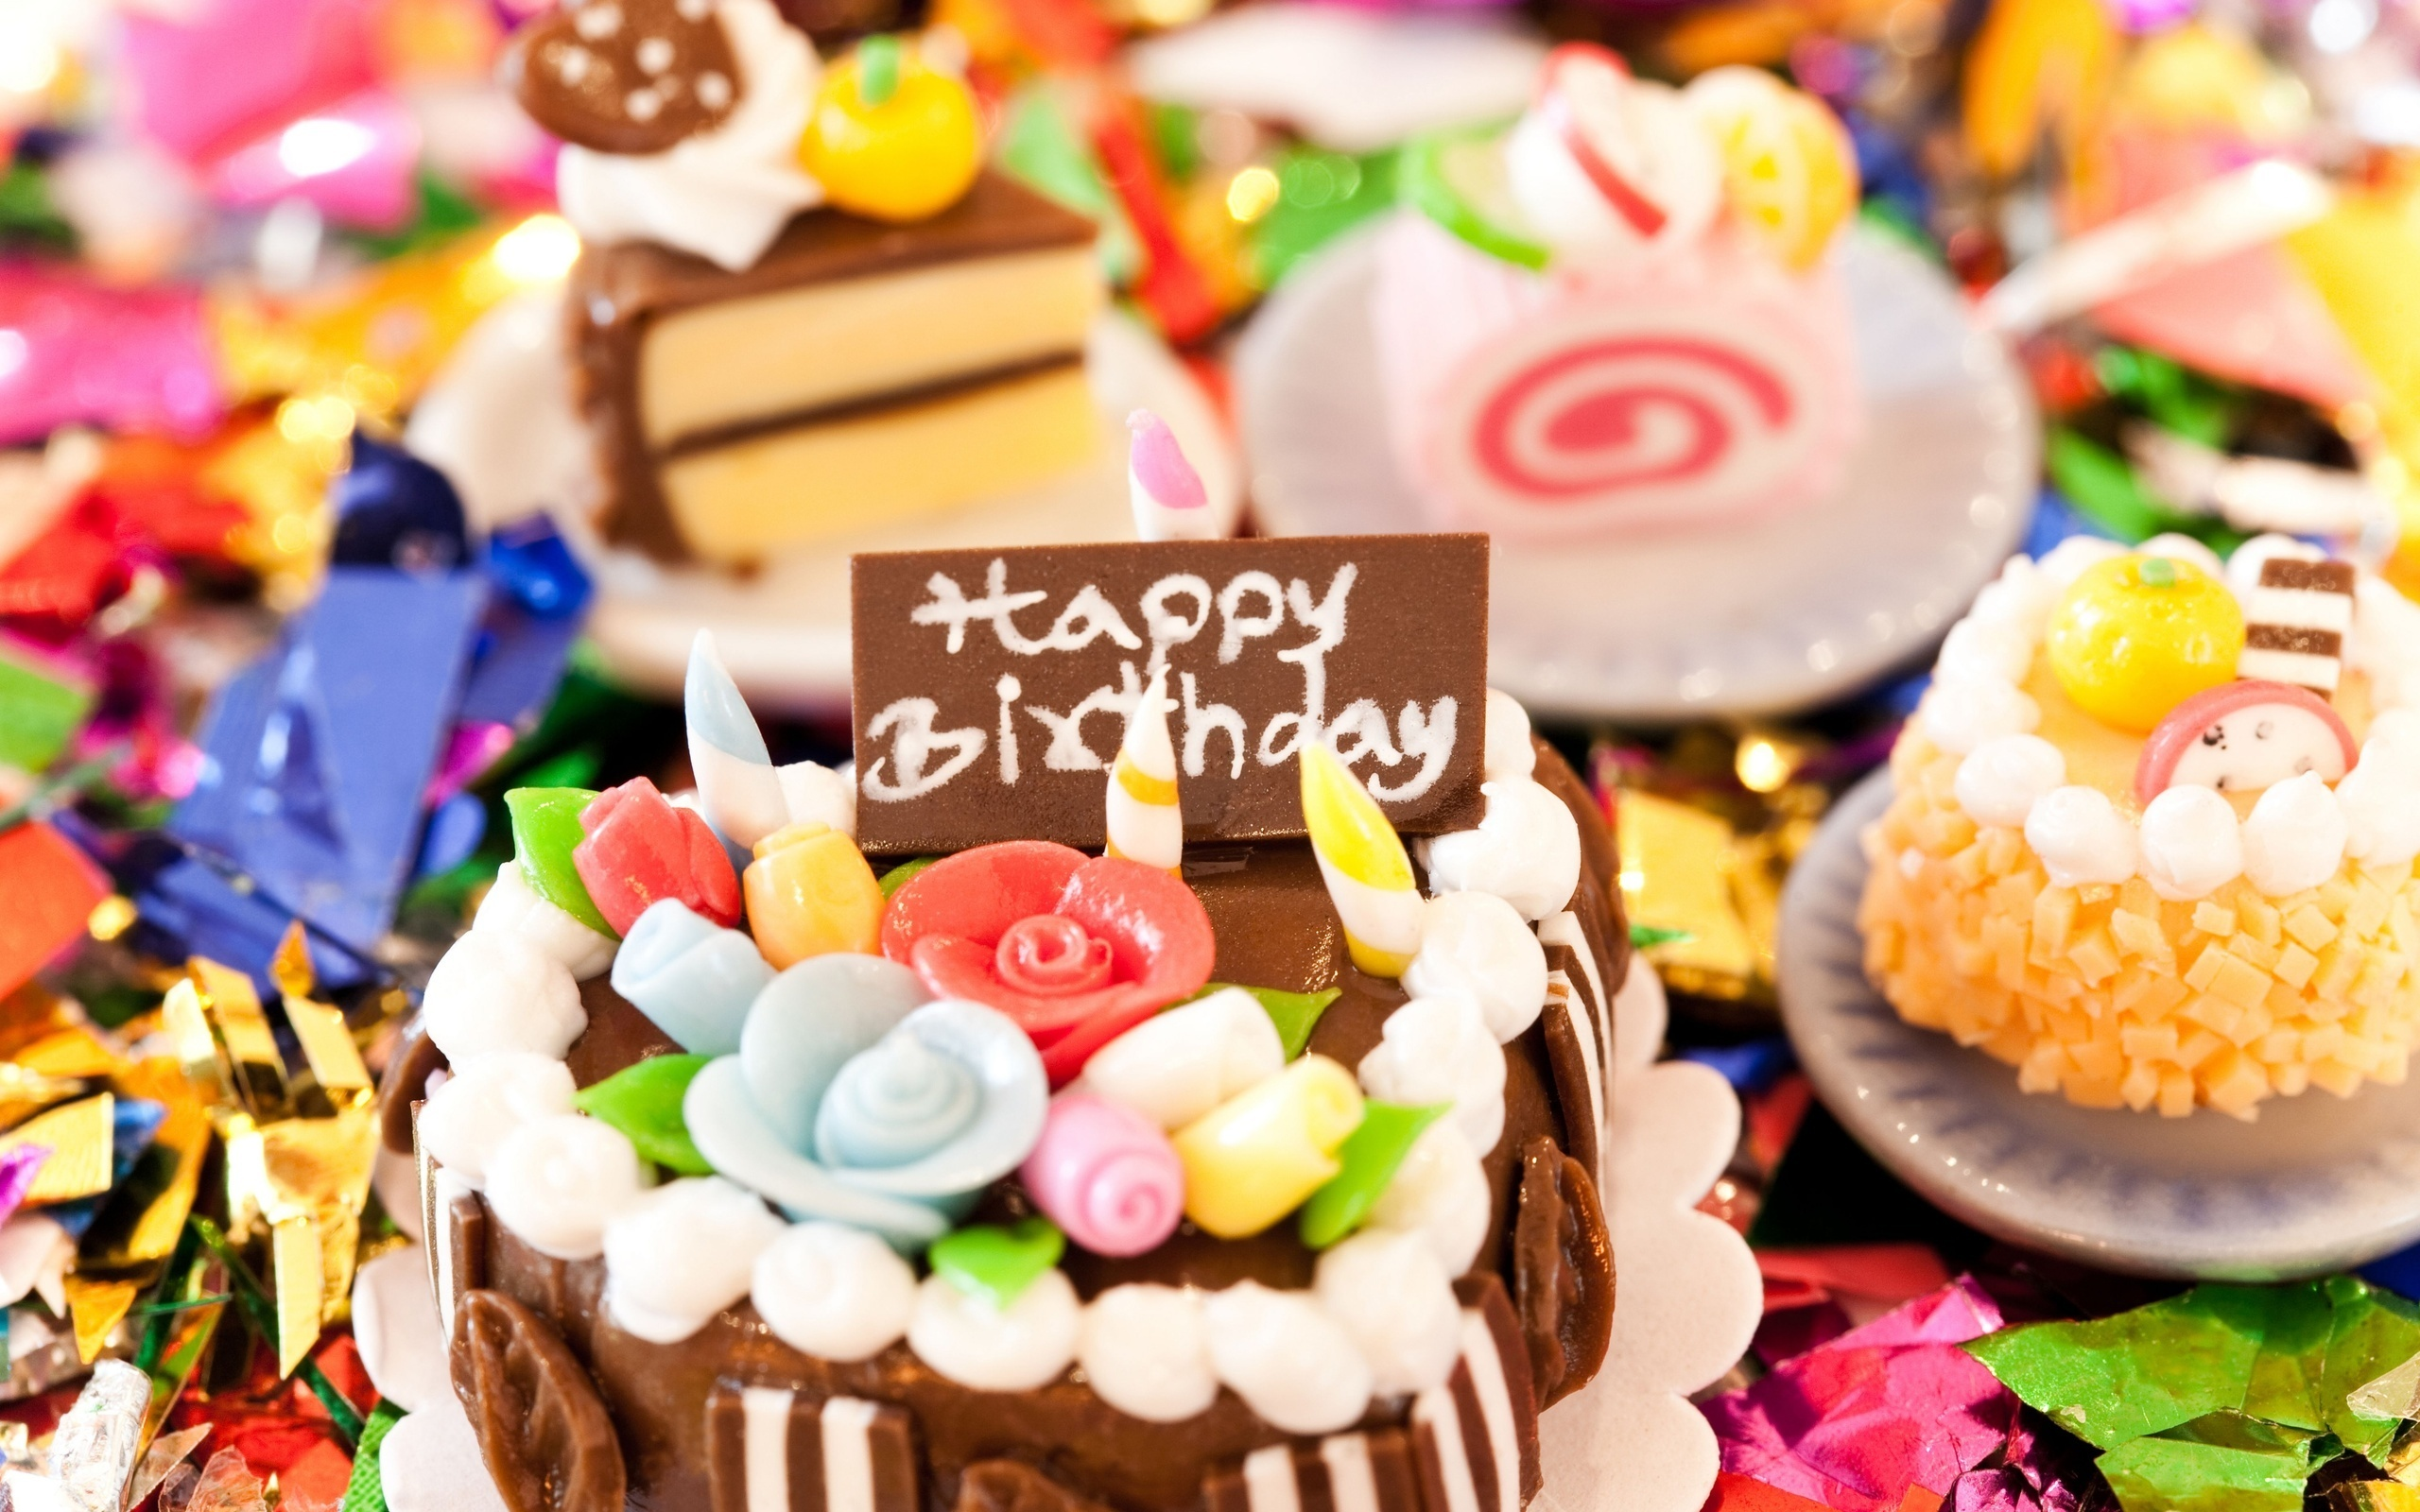 Birthday Cake wallpapers and images   wallpapers pictures photos 2560x1600